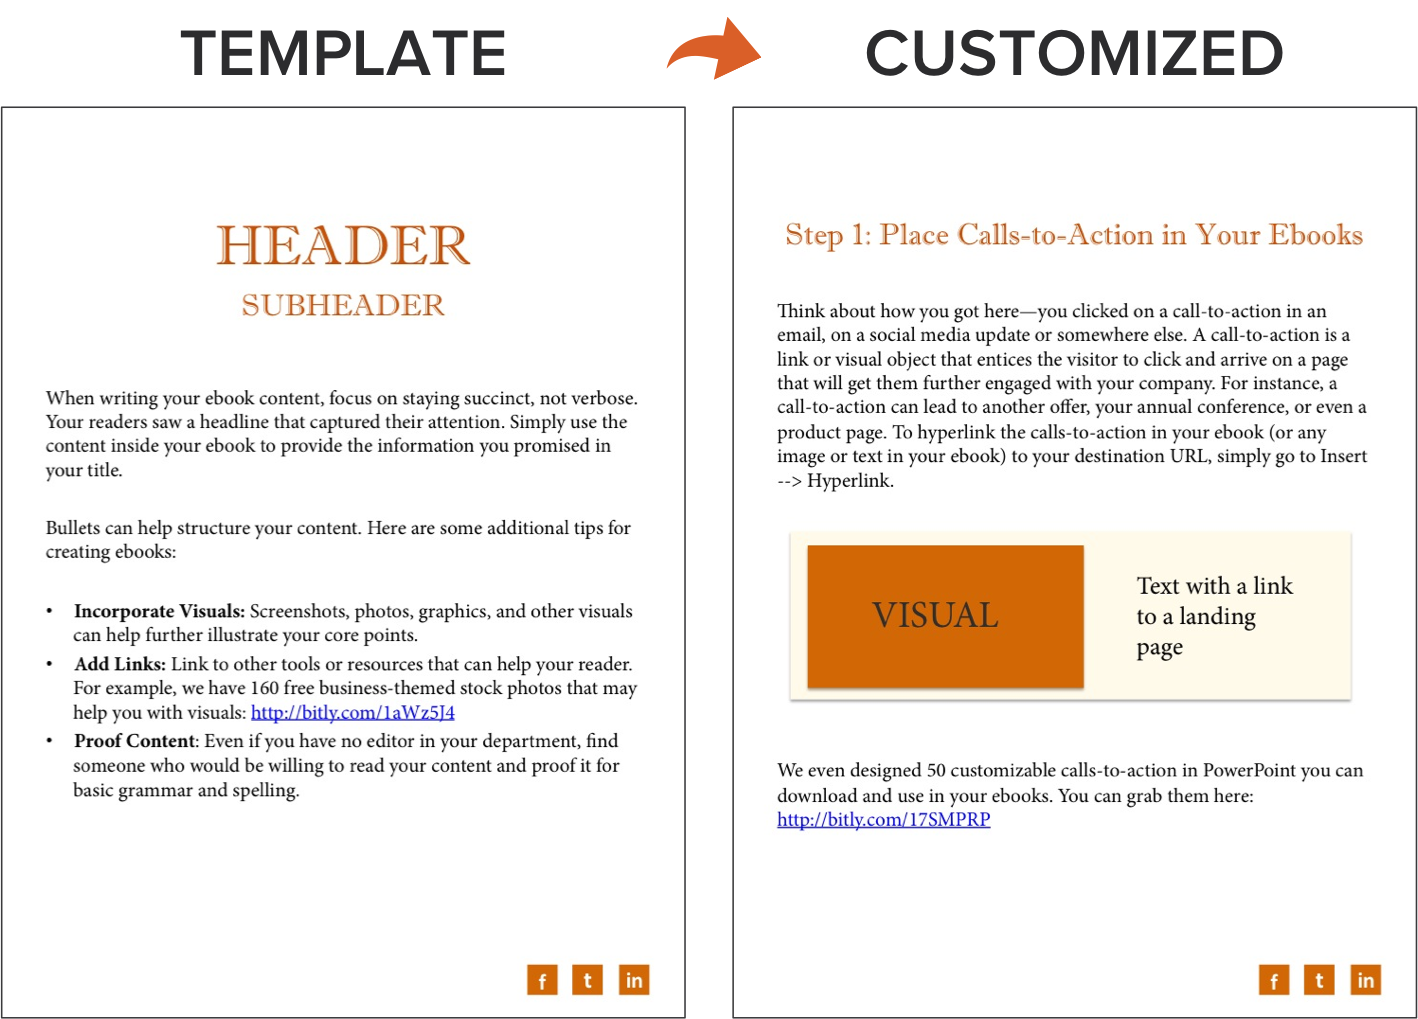 How to Create an Ebook From Start to Finish [+ 13 Free Ebook ...